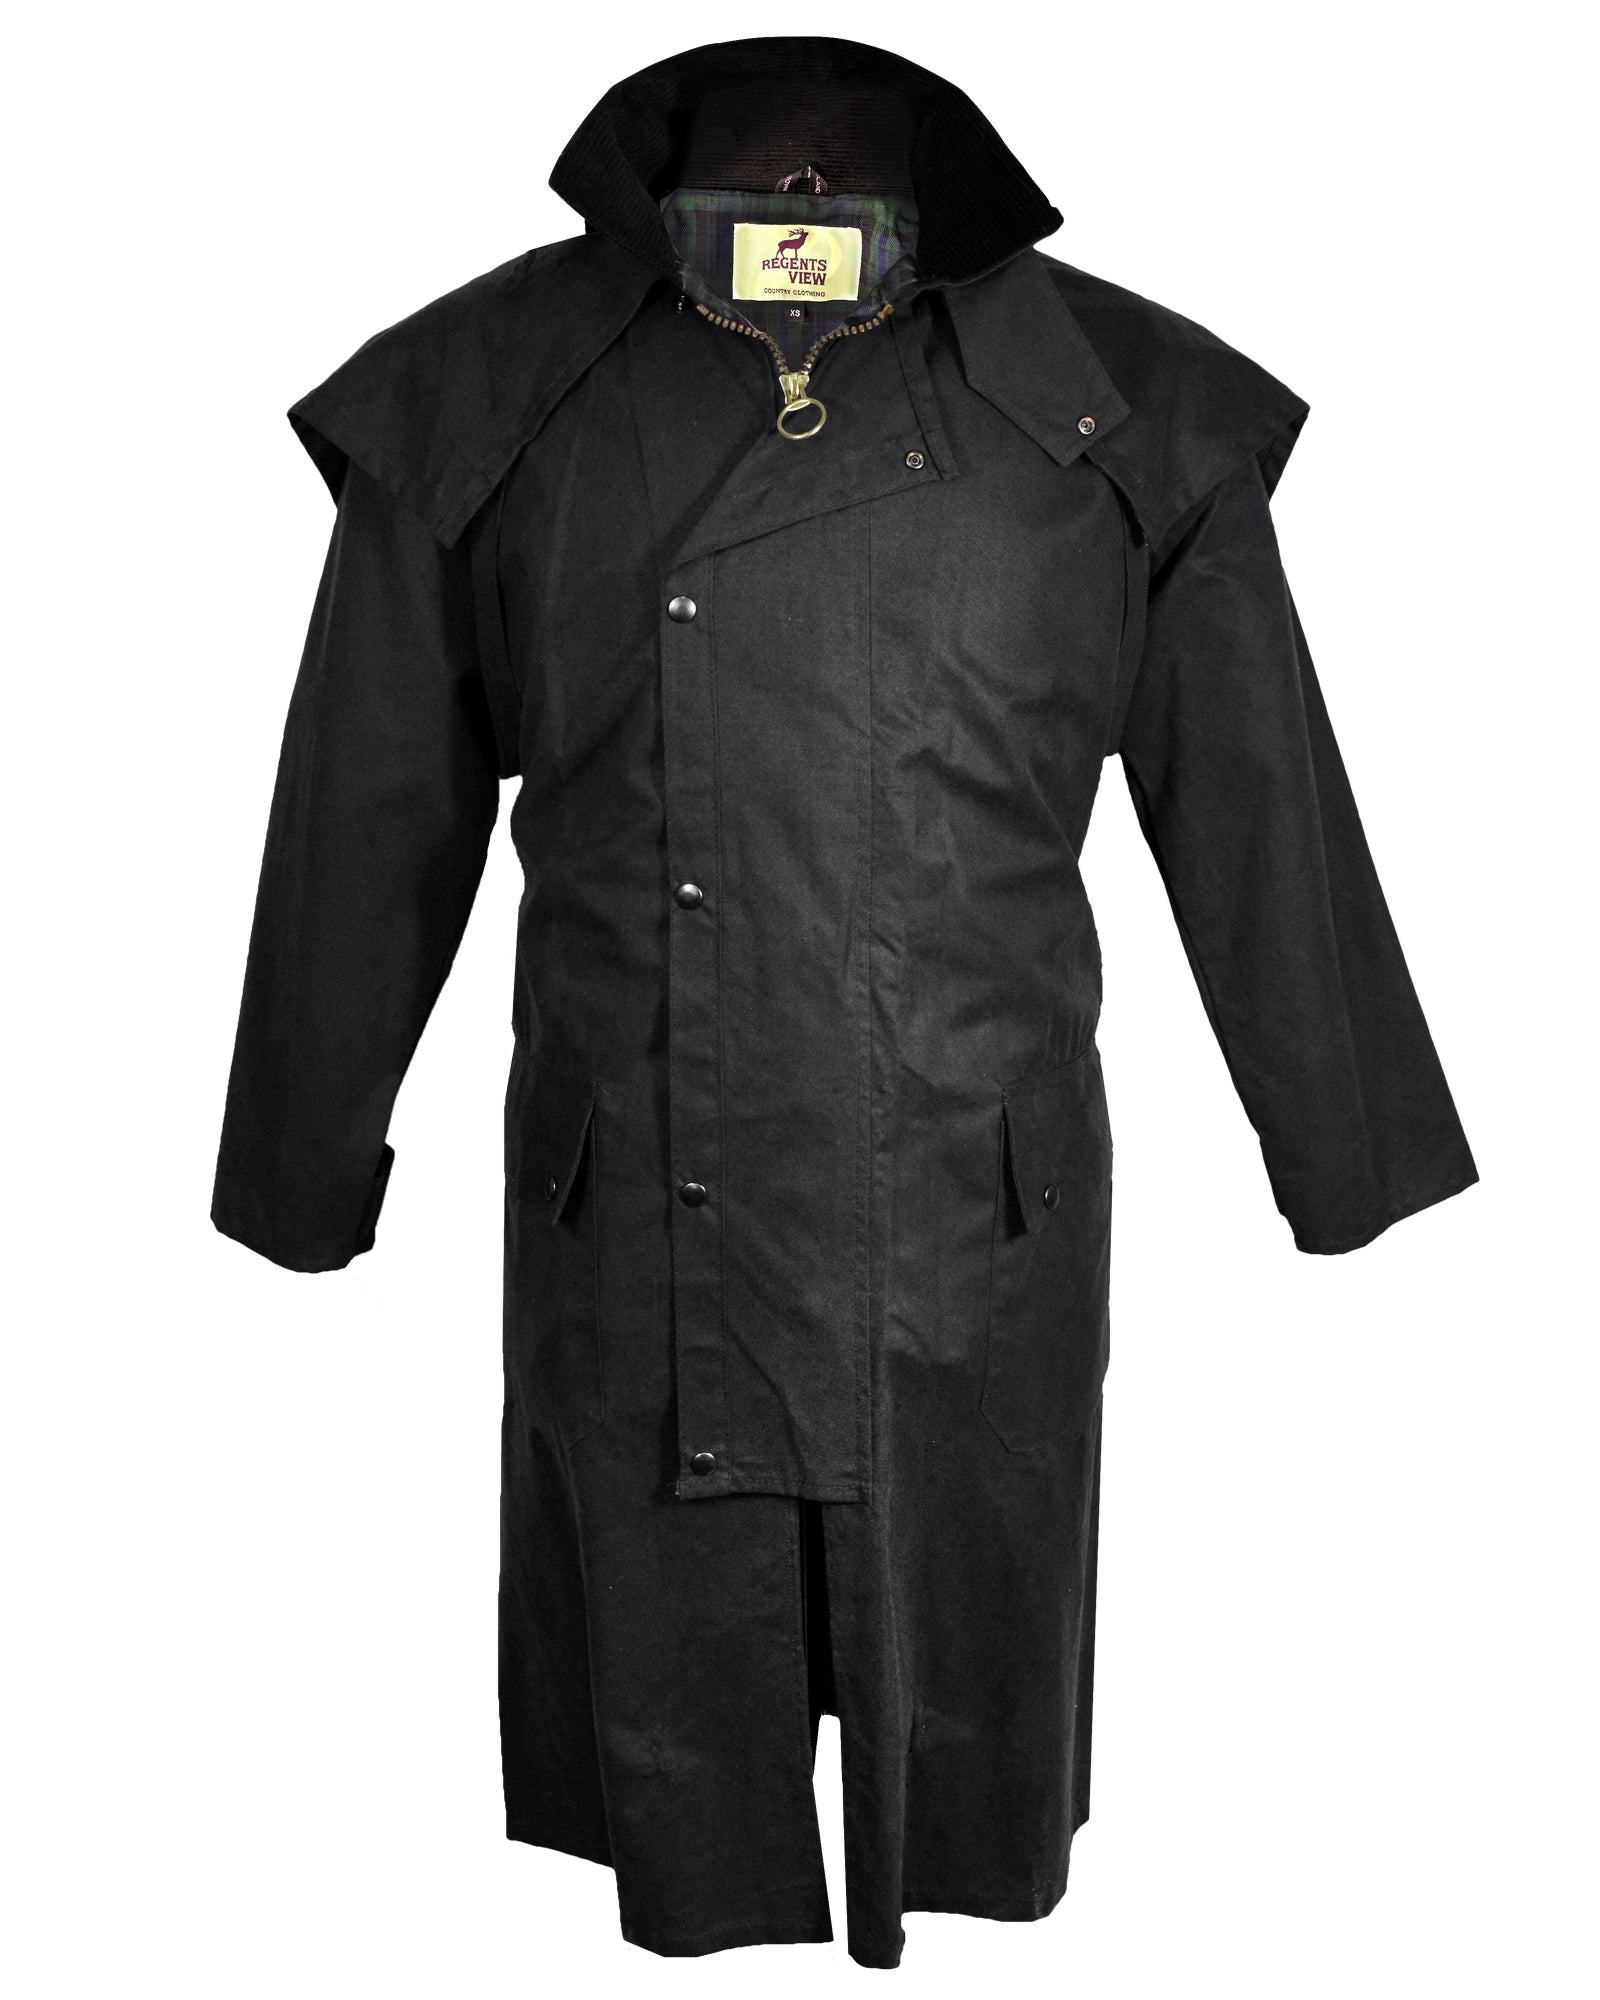 Regents View Waxed Cotton Stockman / Drover Long Coat - Black